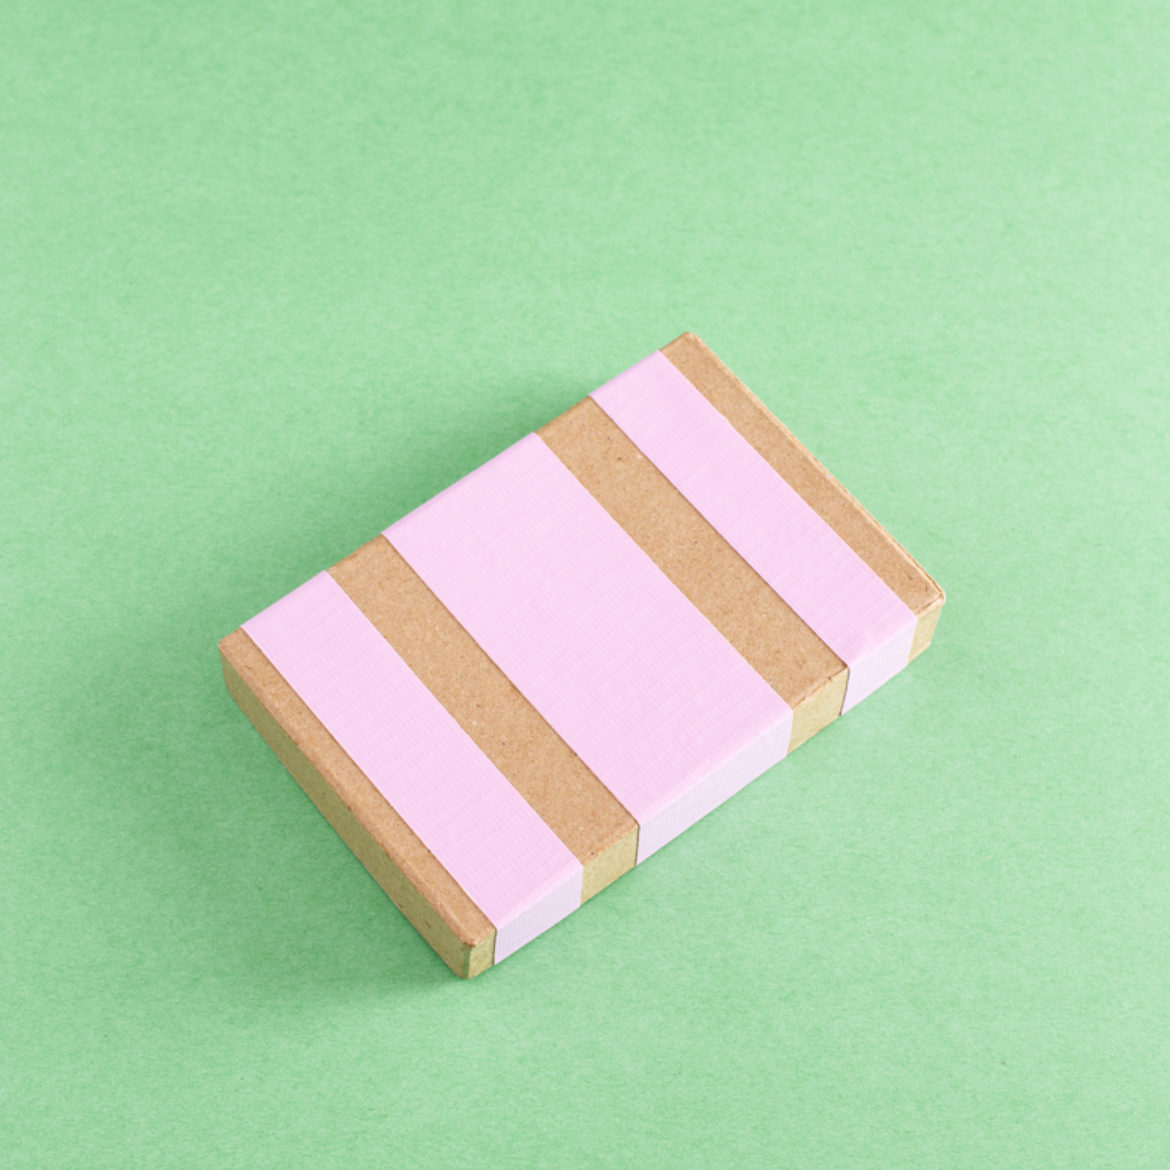 Strips of pink duct tape placed on paper mache box